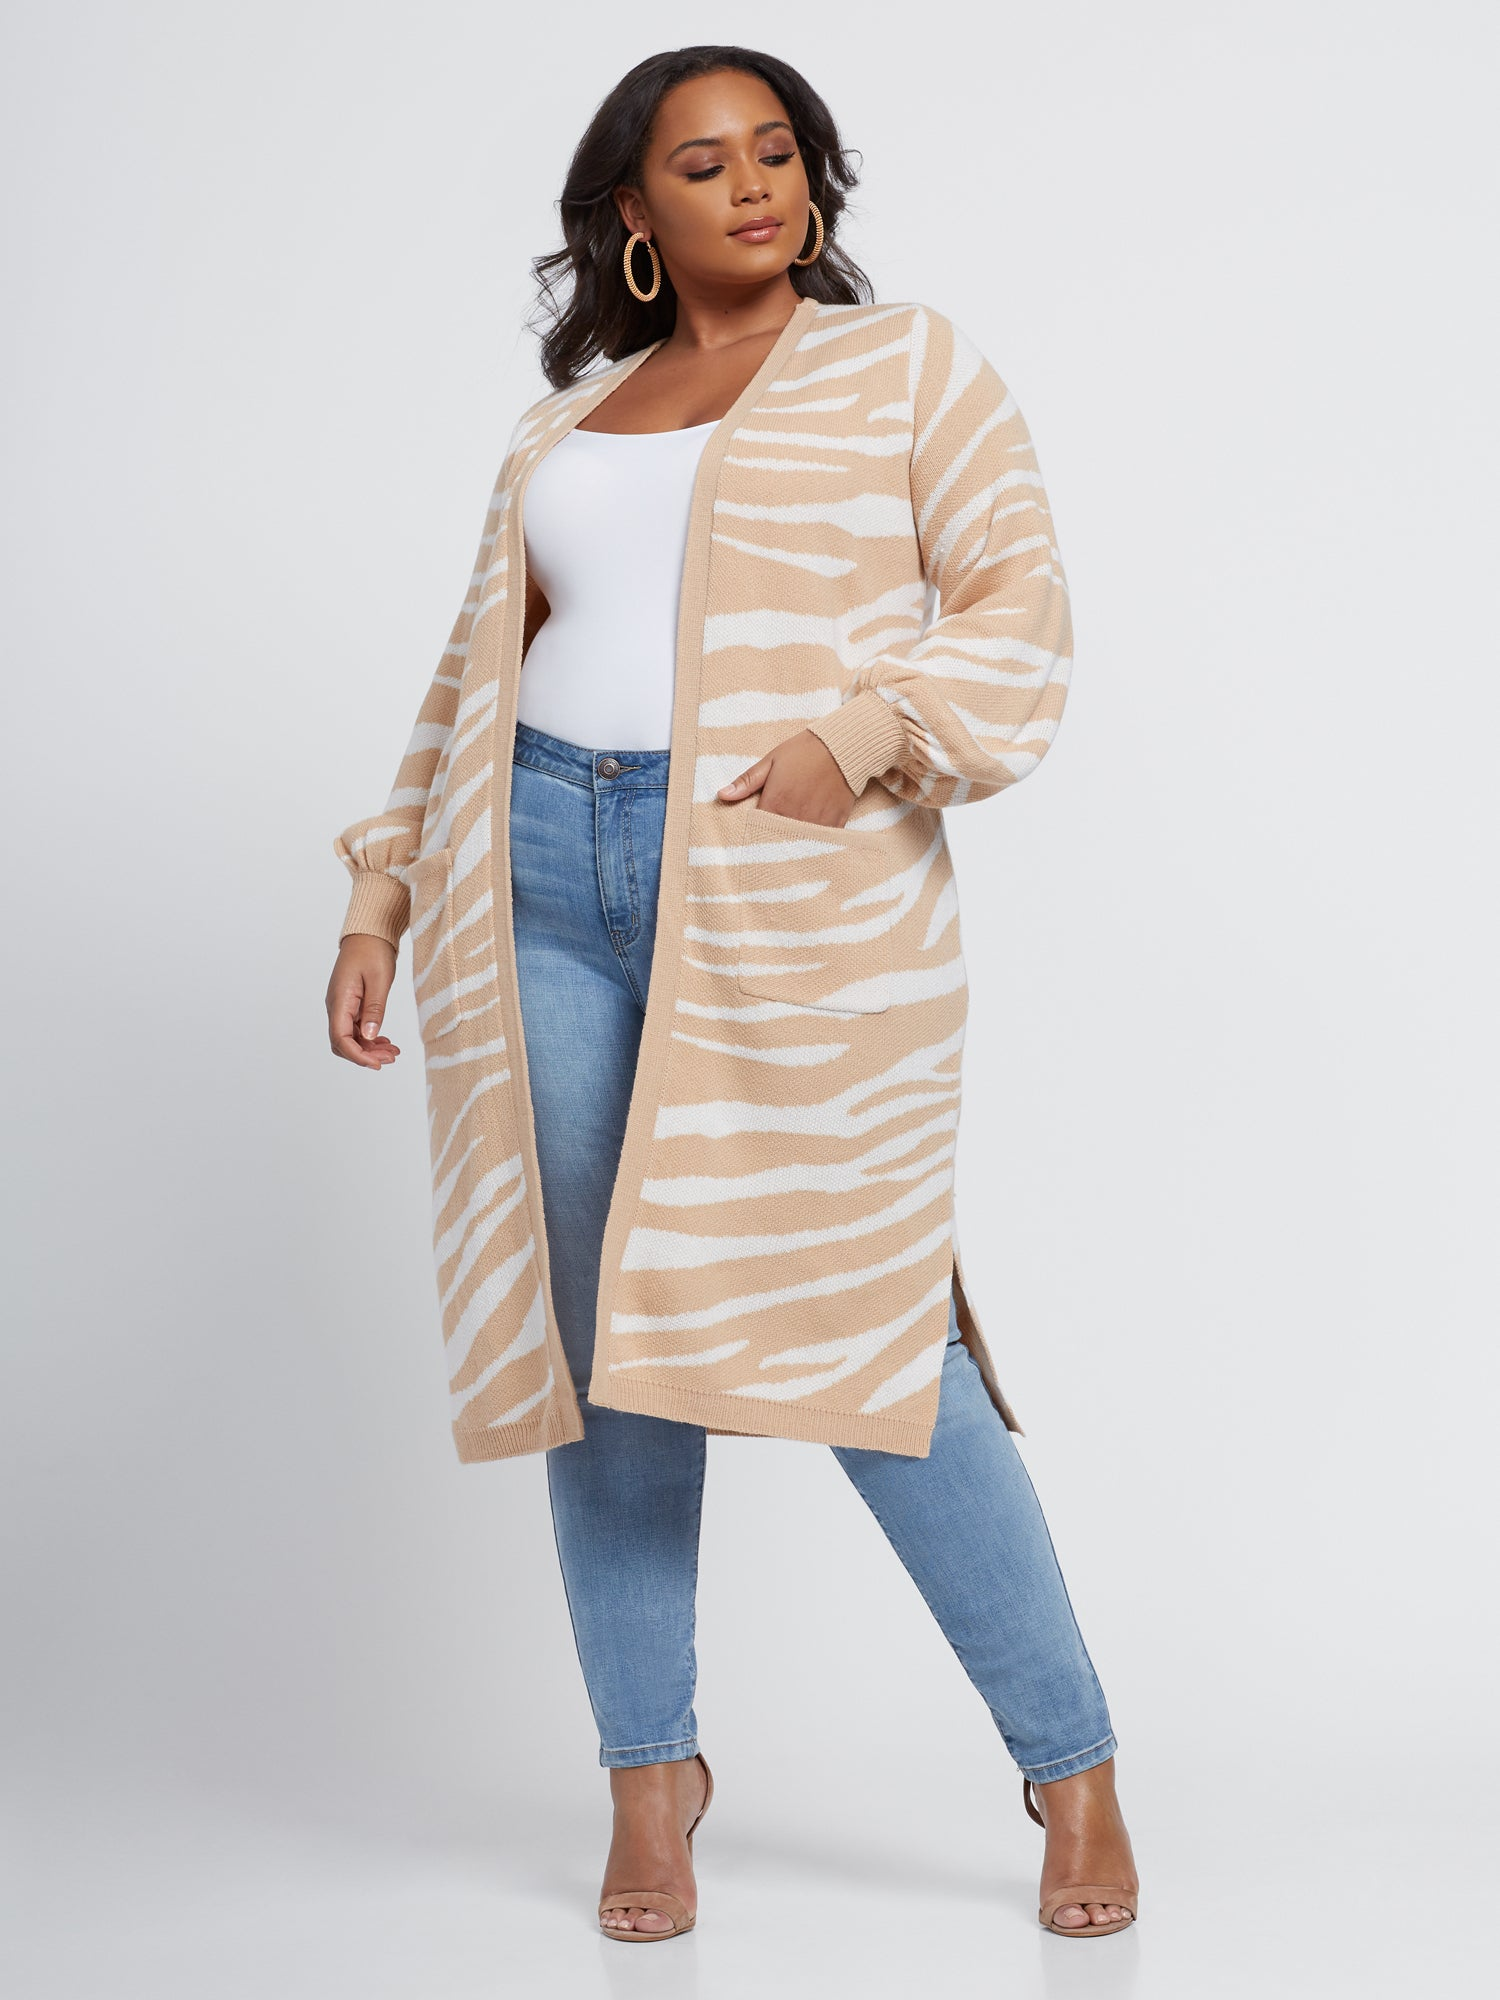 Abby Zebra Print Cardigan Sweater in Ivory